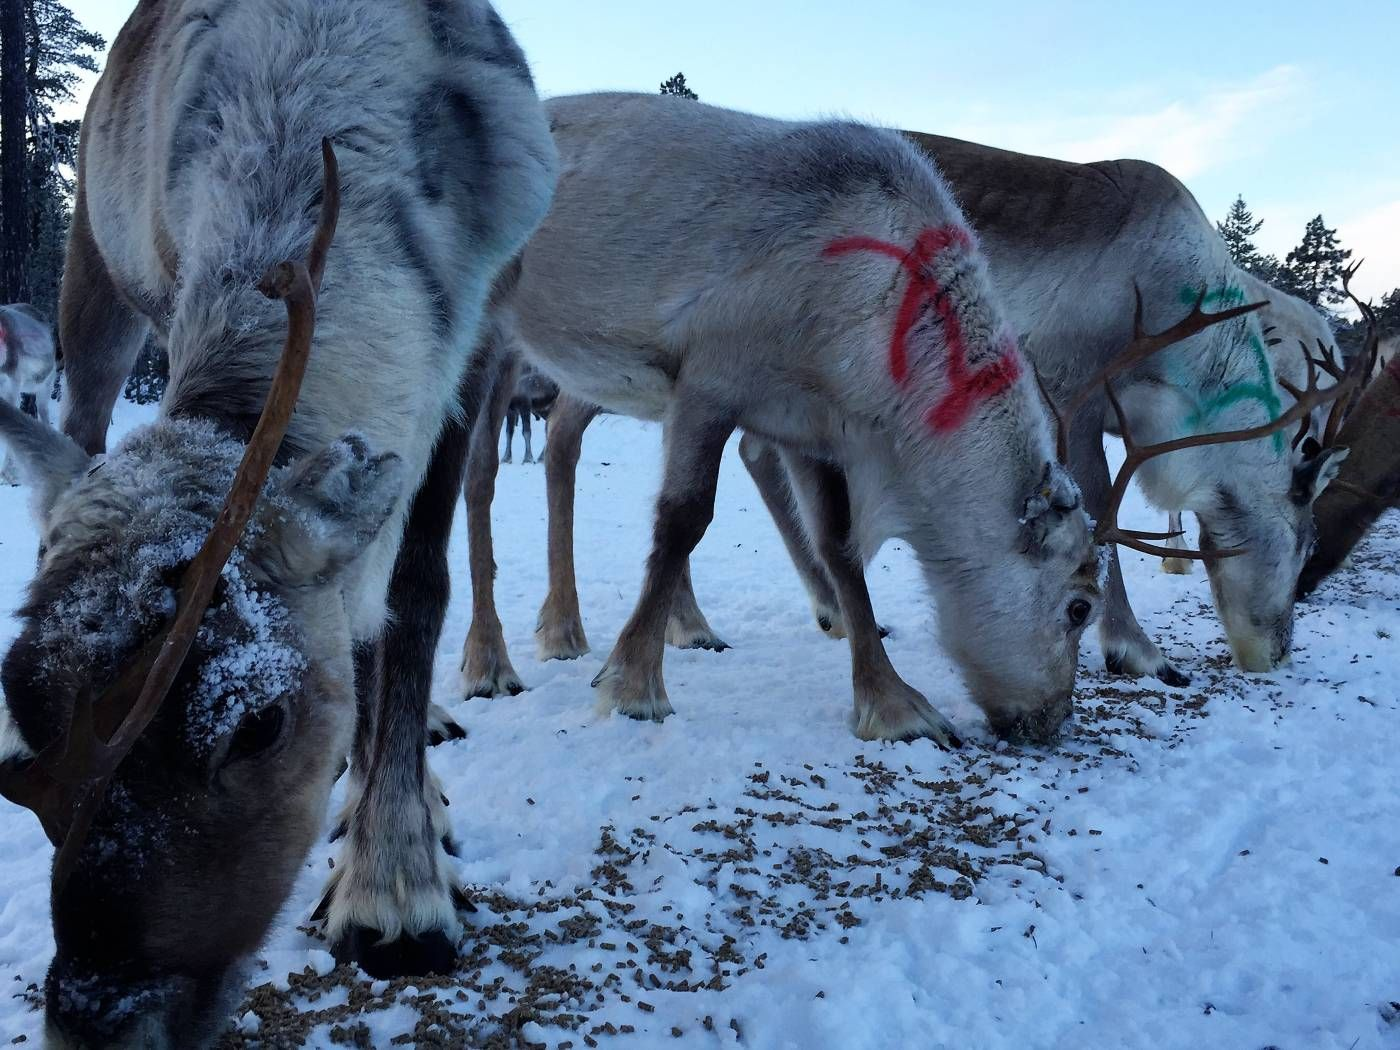 Can the Sámi survive climate change and logging? Climate